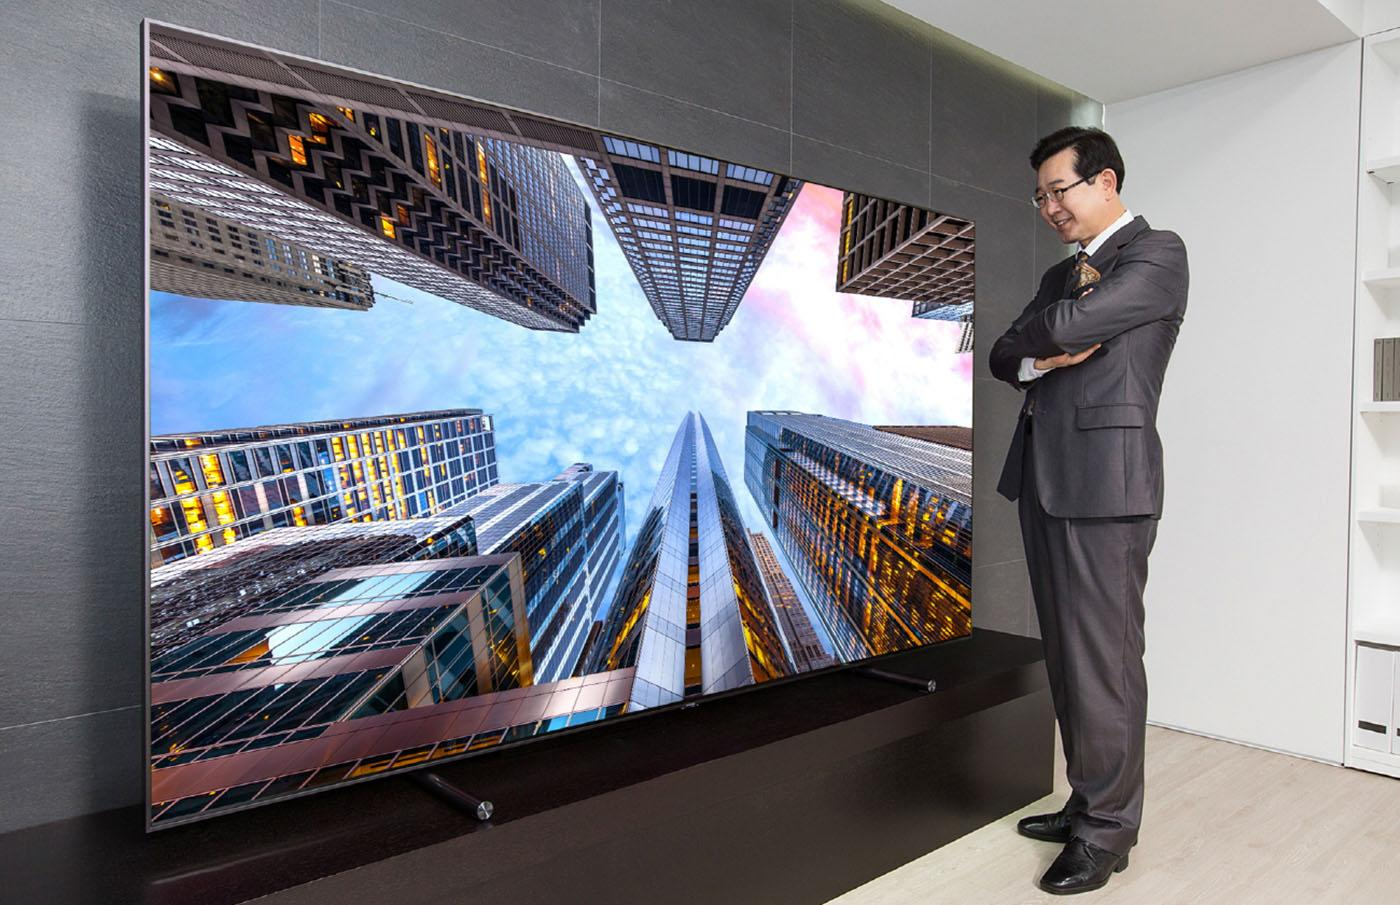 samsung s giant 4k qled tv costs 20 000 engadget samsung s giant 4k qled tv costs 20